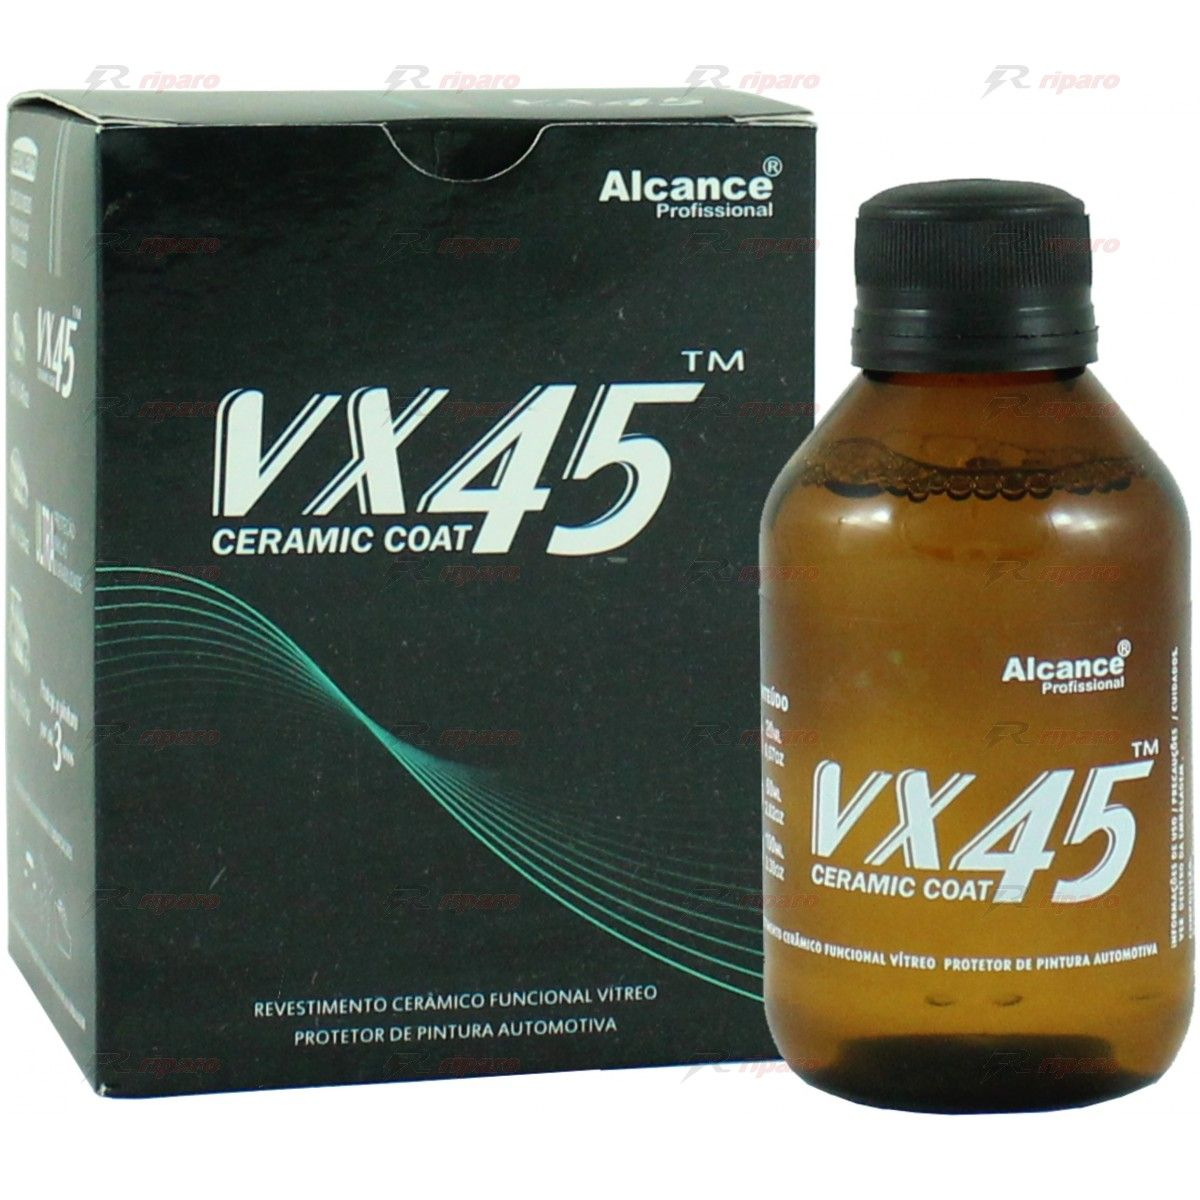 Alcance VX45 Vitrificador Automotivo Ceramic Coat - 100ml  - Loja Go Eco Wash